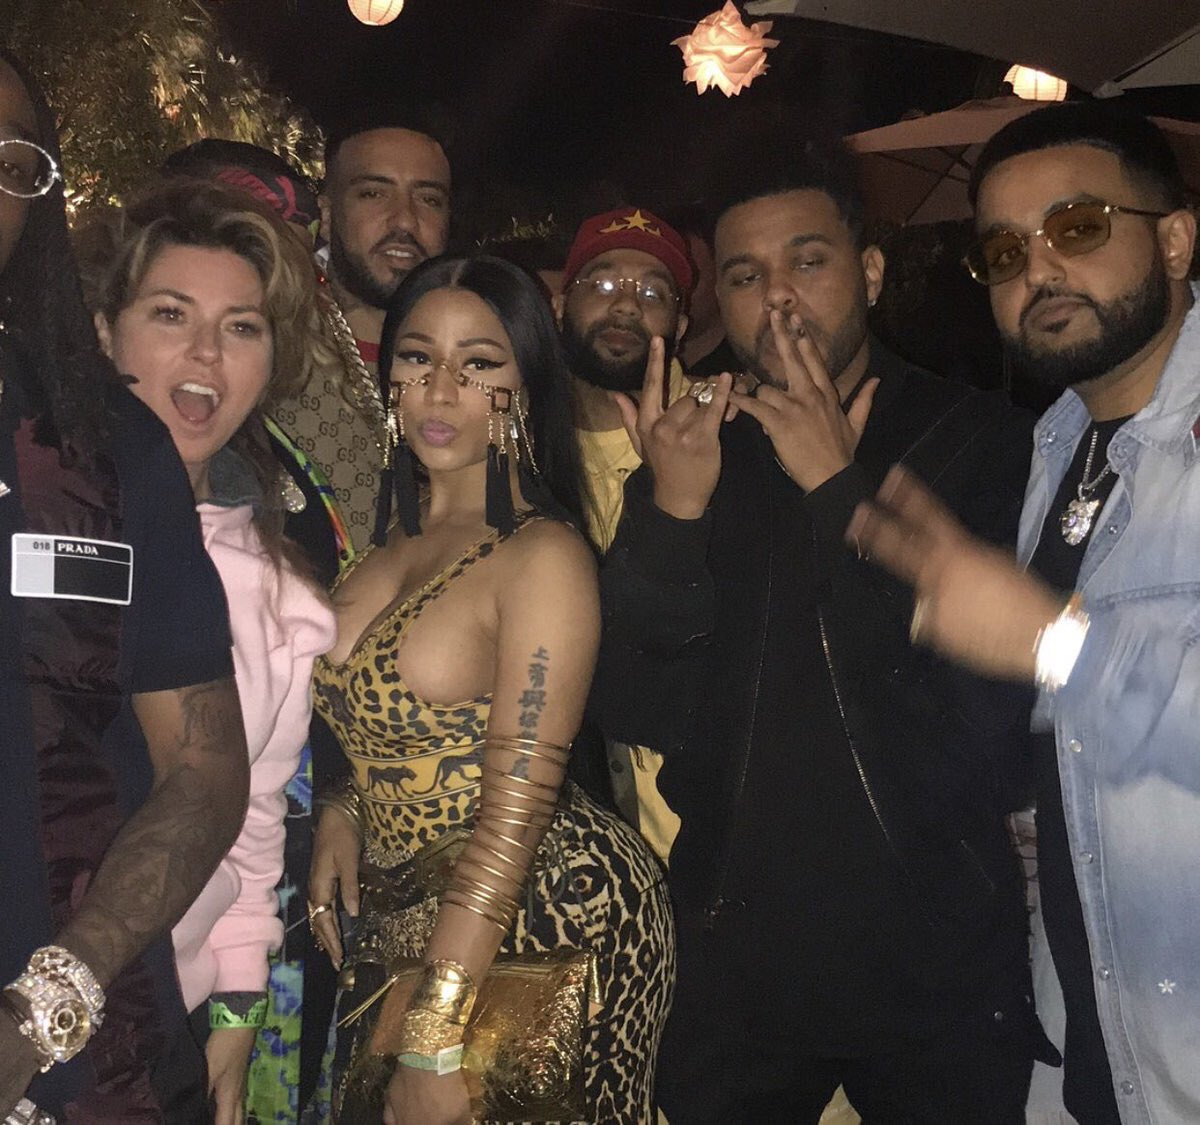 Nothing but crew love #coachella